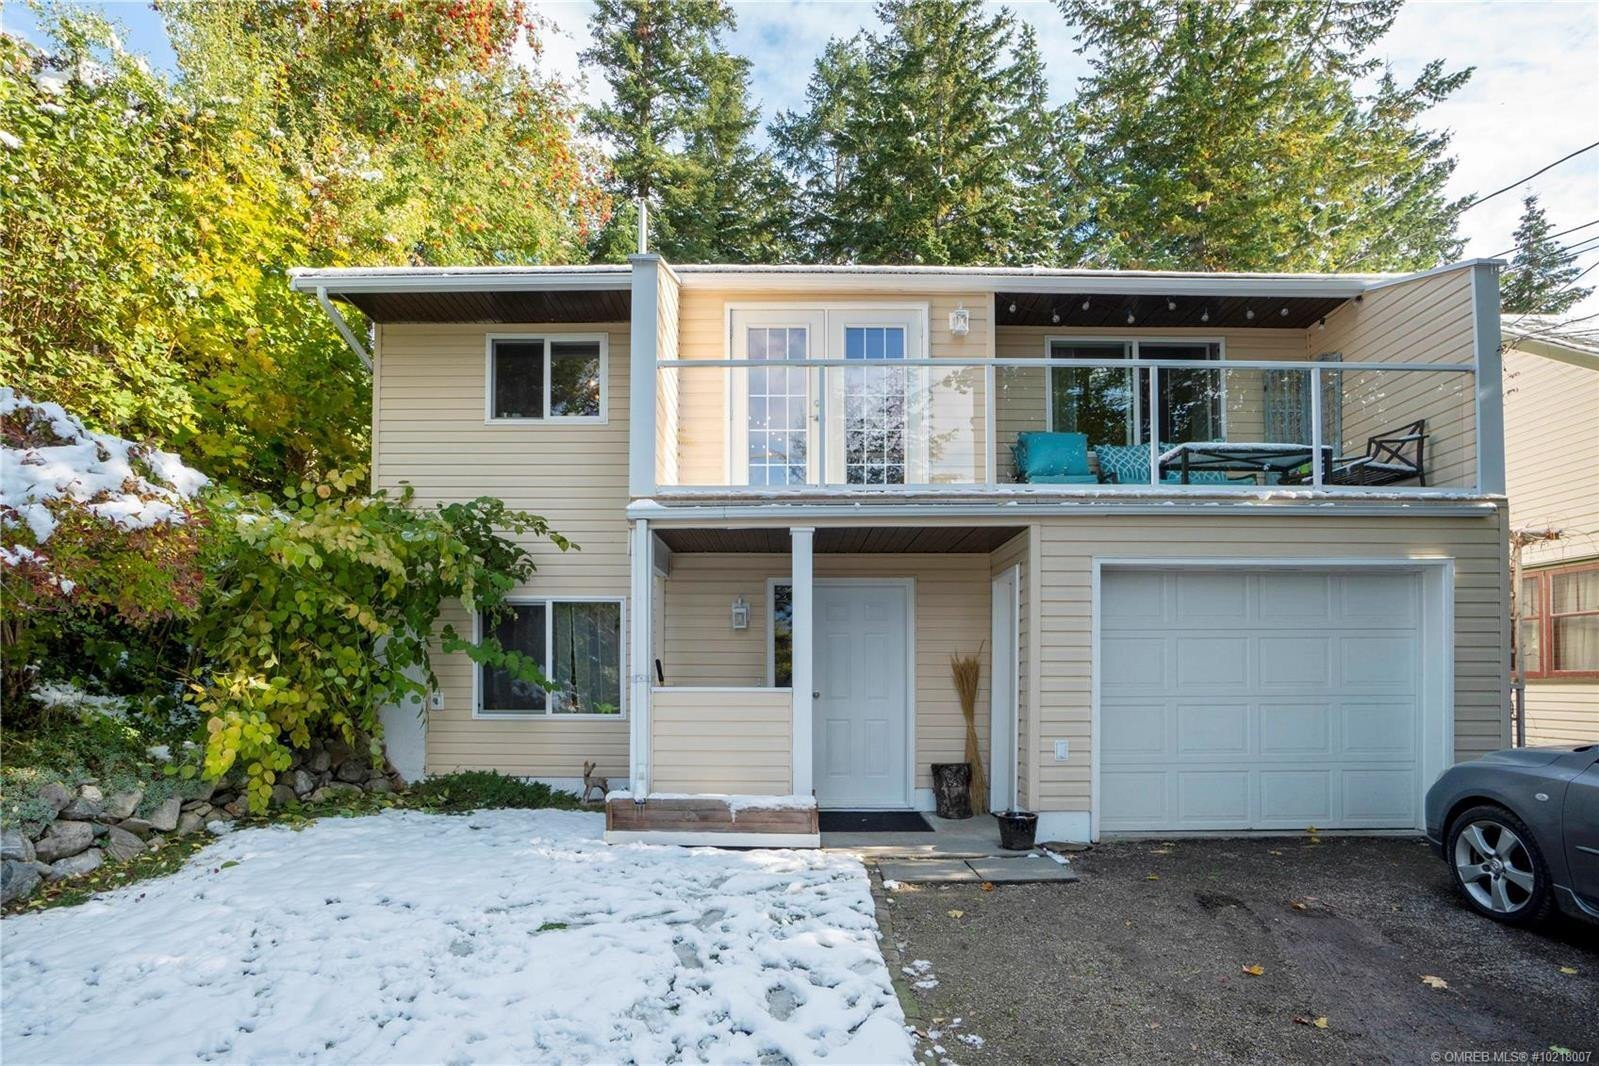 House for sale at 130 8 St Northeast Salmon Arm British Columbia - MLS: 10218007